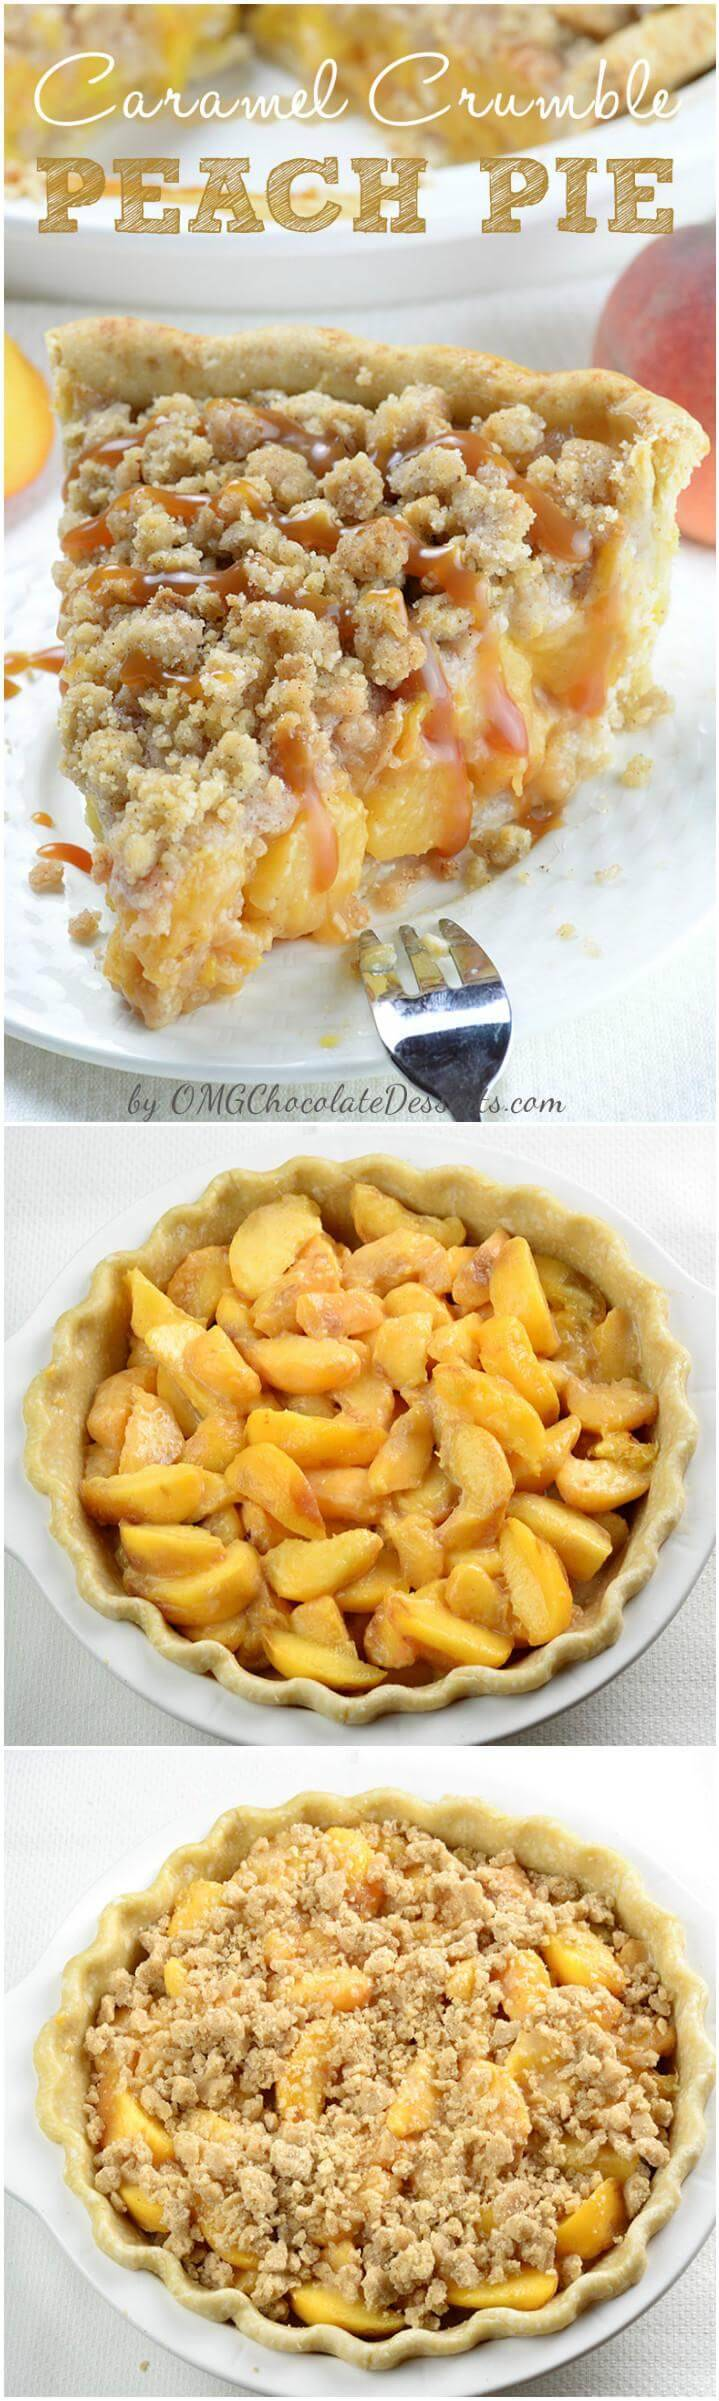 caramel crunch peach pie